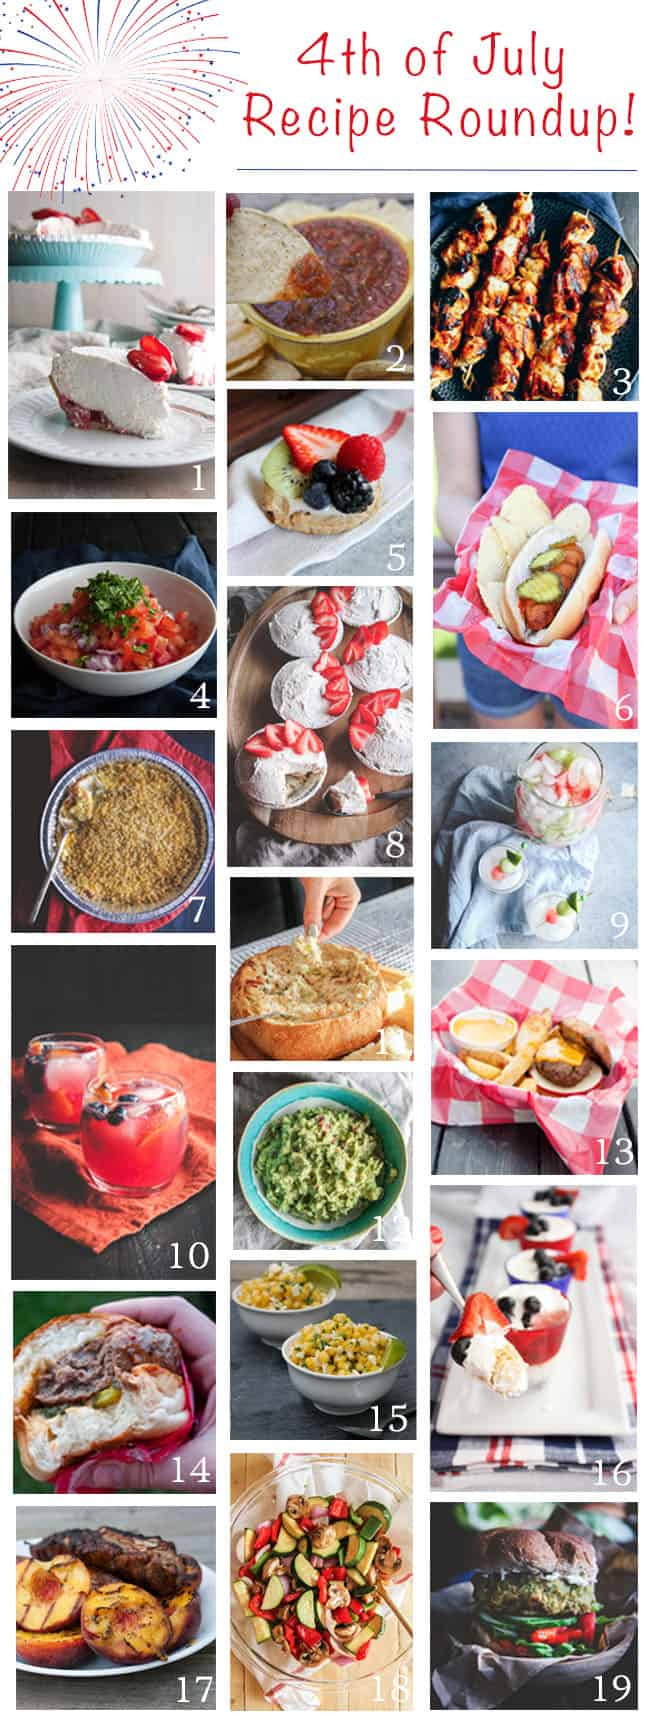 A 4th of July recipe roundup to include all of the best dishes to bring to any BBQ Bash!